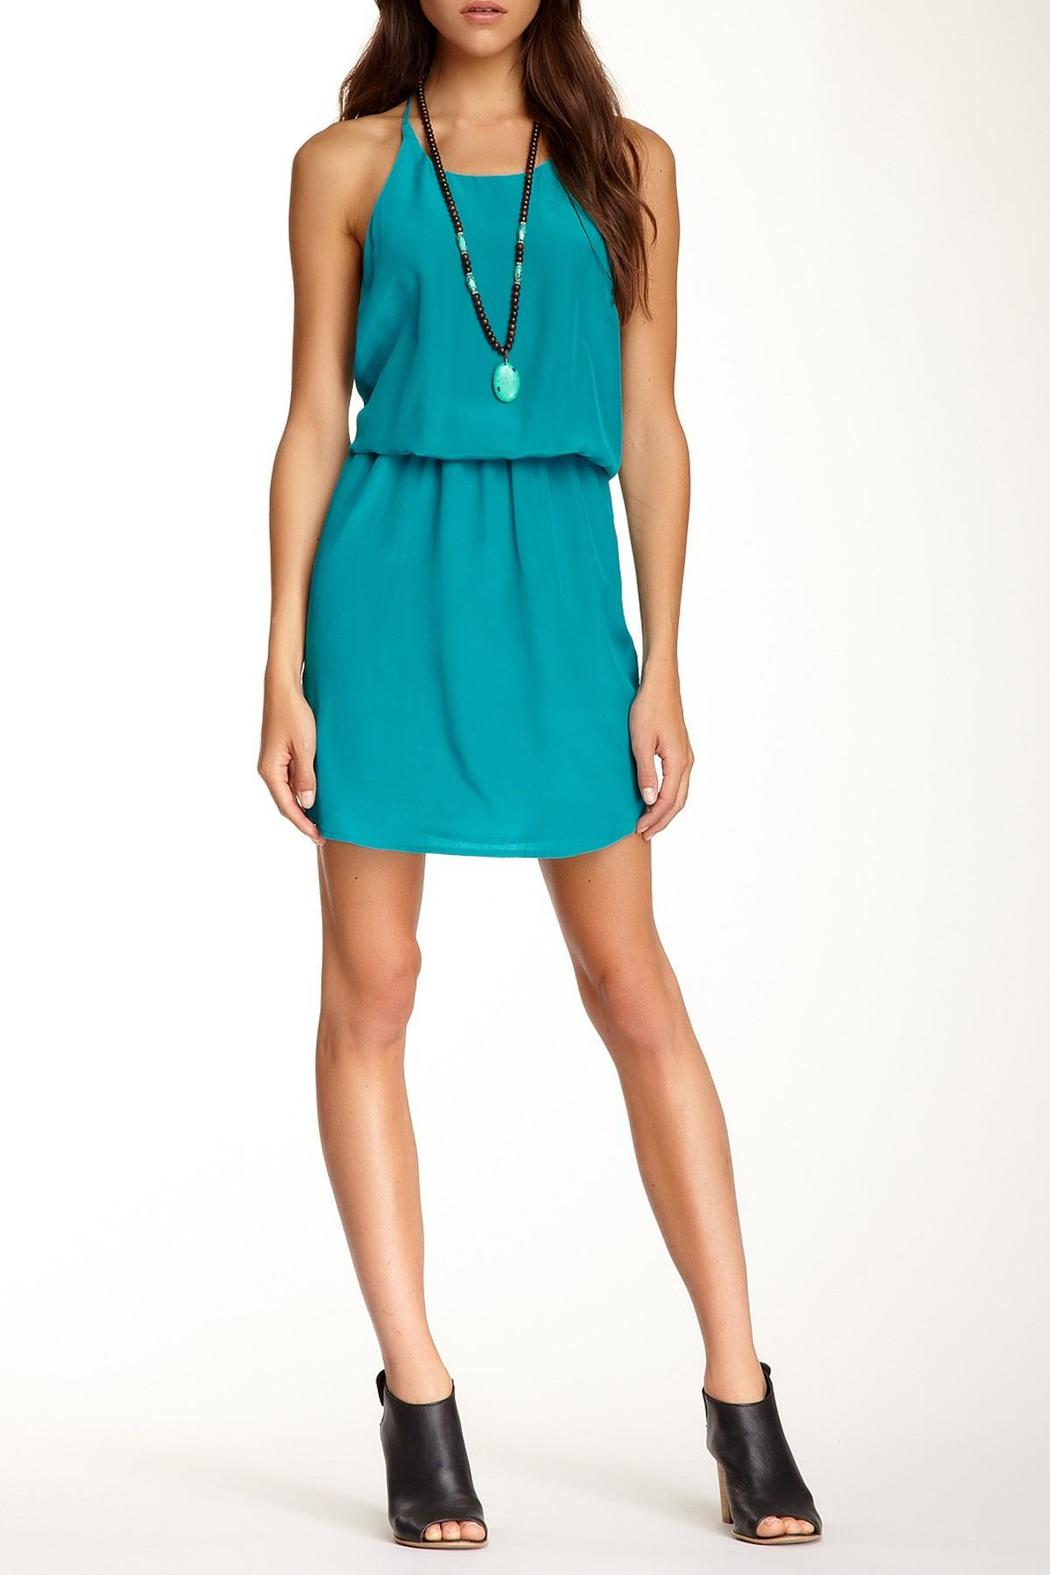 Rieley Sleeveless Racerback Dress - Main Image